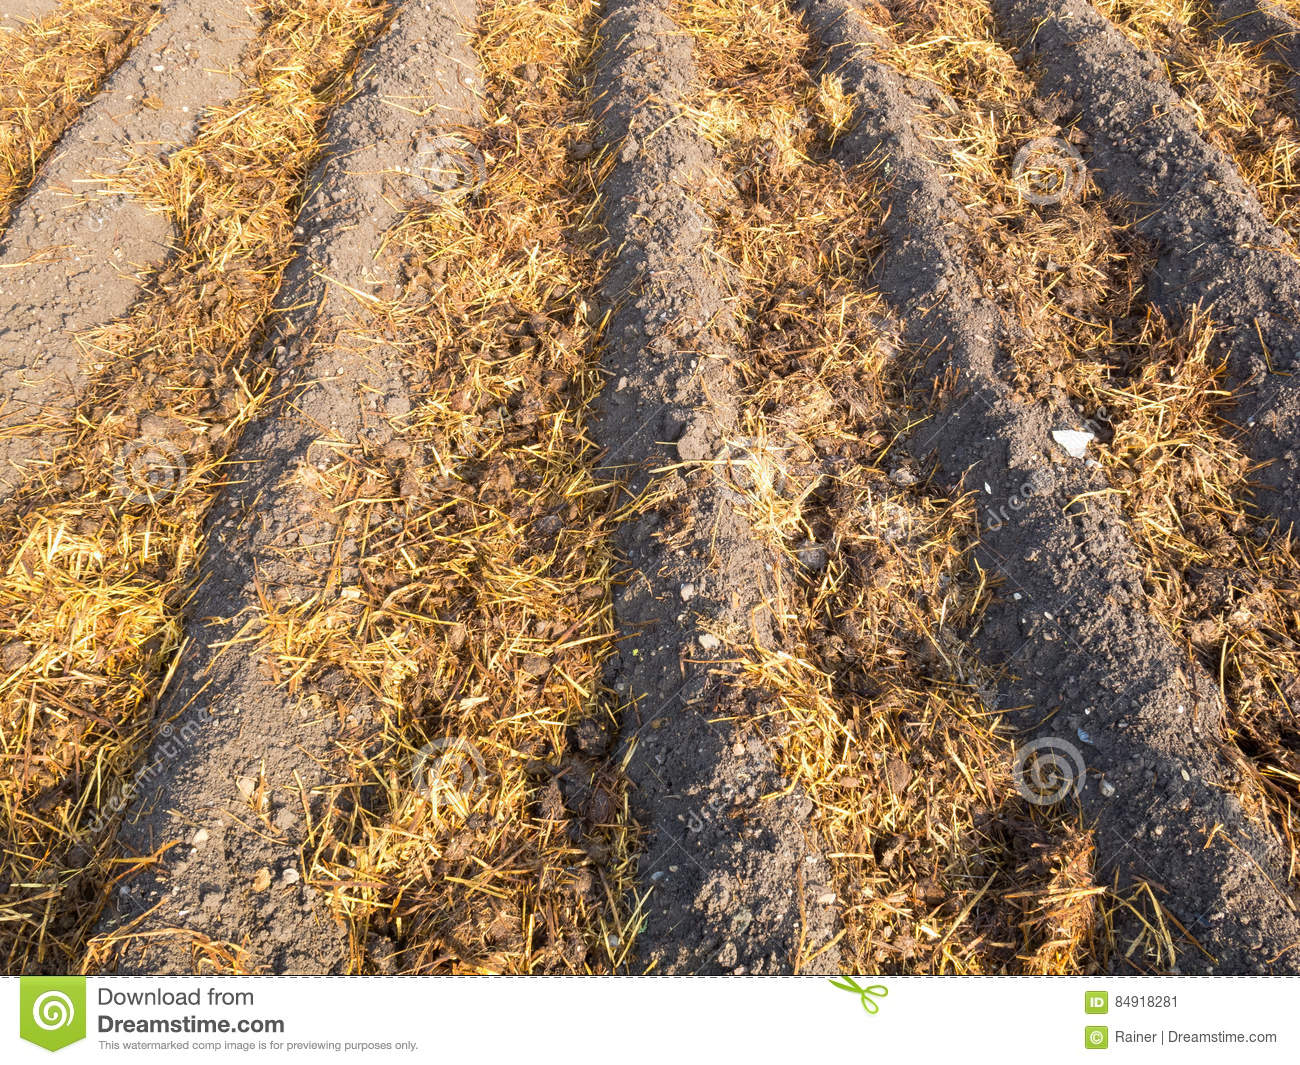 Sheep Dung On Vegetable Garden Soil Stock Image - Image of dung ...